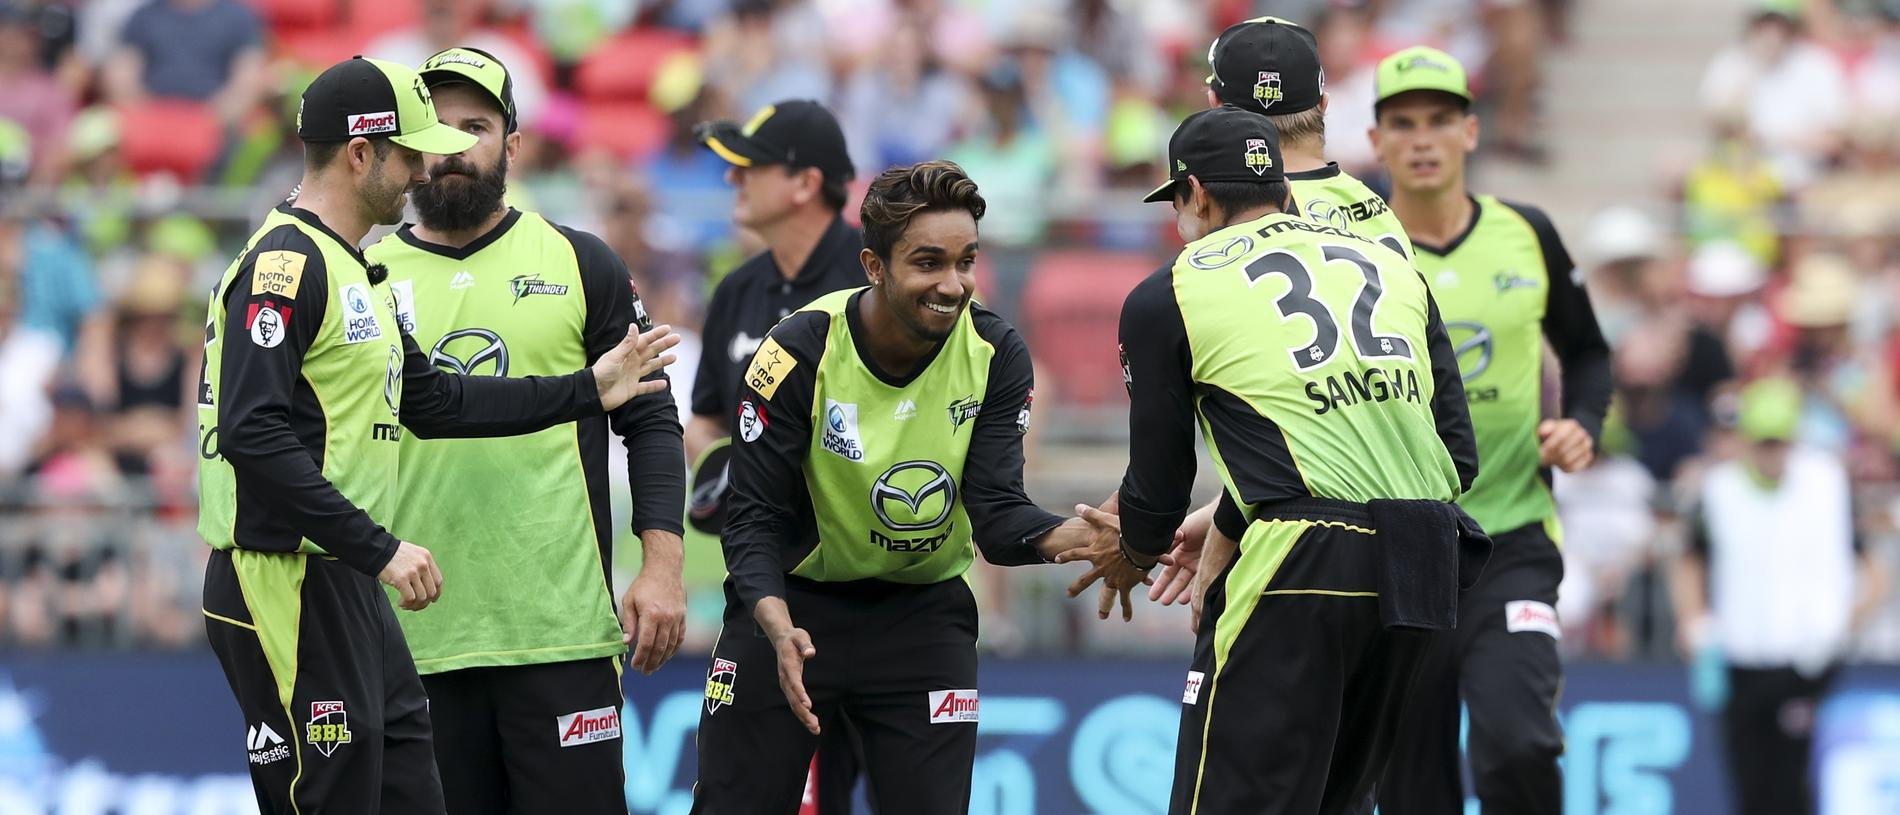 Arjun Nair (centre) of the Thunder celebrates taking the wicket of Ben Laughlin of the Strikers with teammates during the Big Bash League (BBL) match between the Sydney Thunder and the Adelaide Strikers at Spotless Stadium in Sydney, Sunday, January 13, 2019. (AAP Image/David Neilson) NO ARCHIVING, EDITORIAL USE ONLY, IMAGES TO BE USED FOR NEWS REPORTING PURPOSES ONLY, NO COMMERCIAL USE WHATSOEVER, NO USE IN BOOKS WITHOUT PRIOR WRITTEN CONSENT FROM AAP